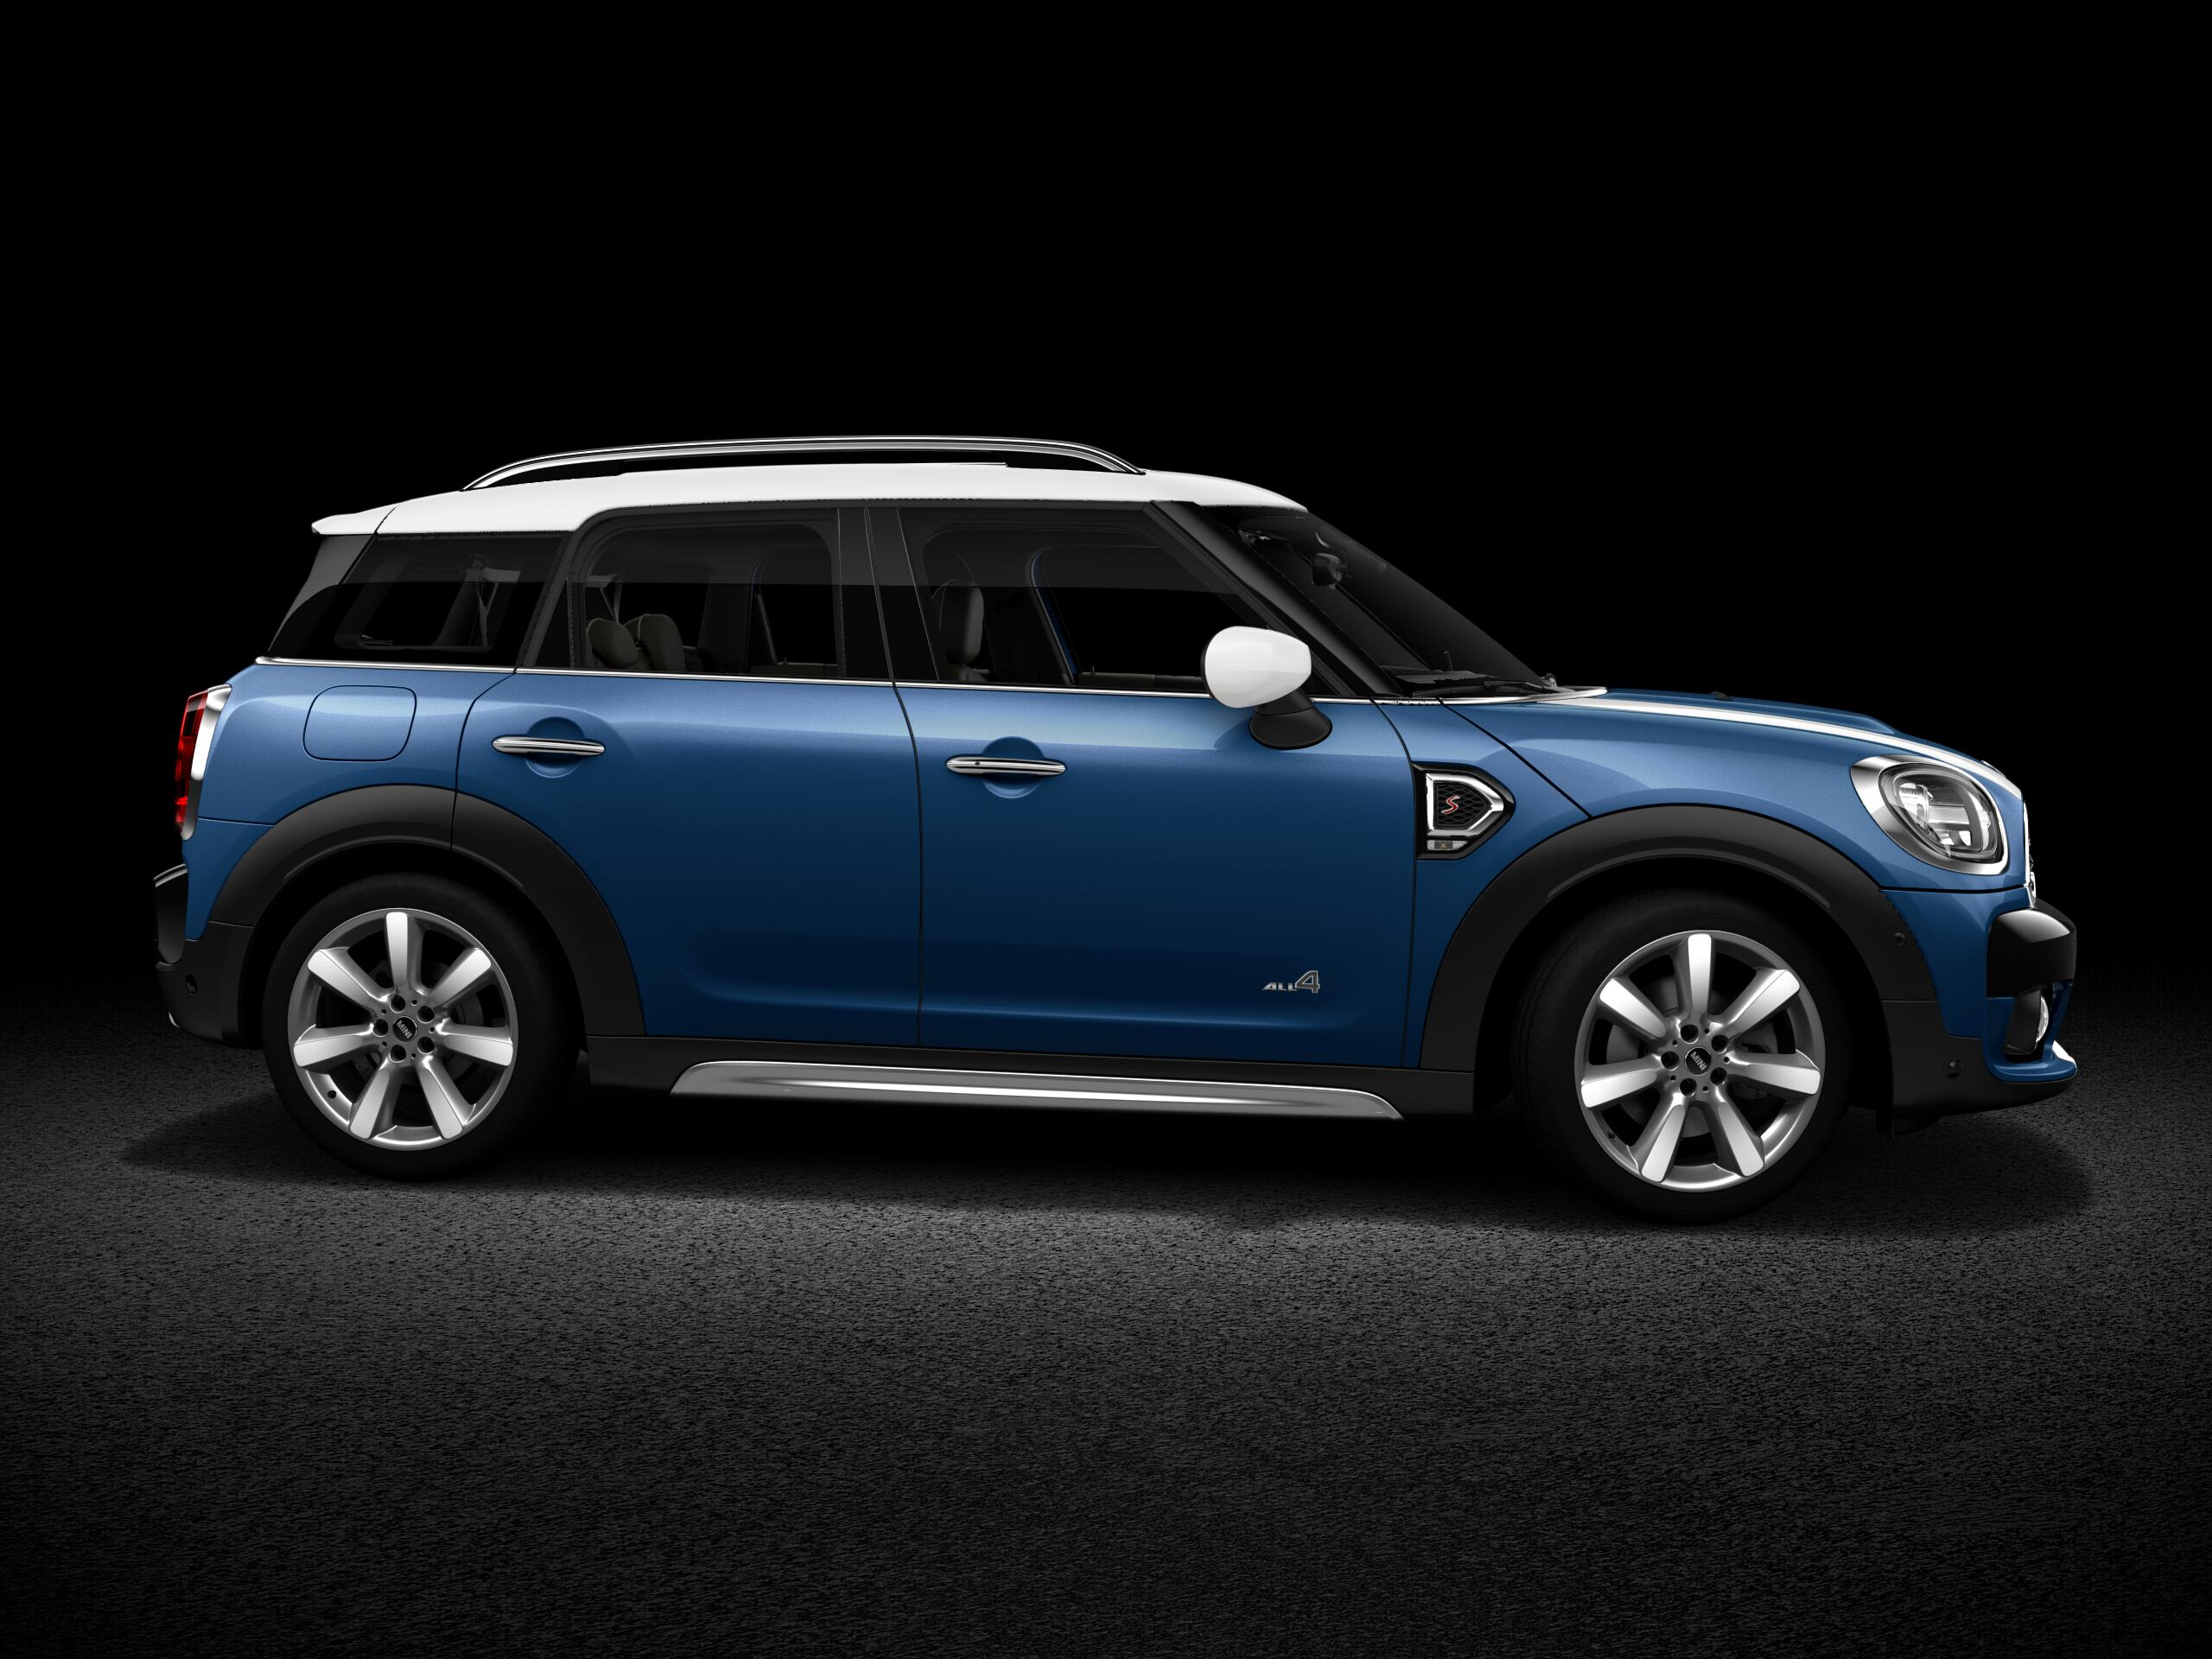 MINI Cooper S Countryman ALL4 front profile